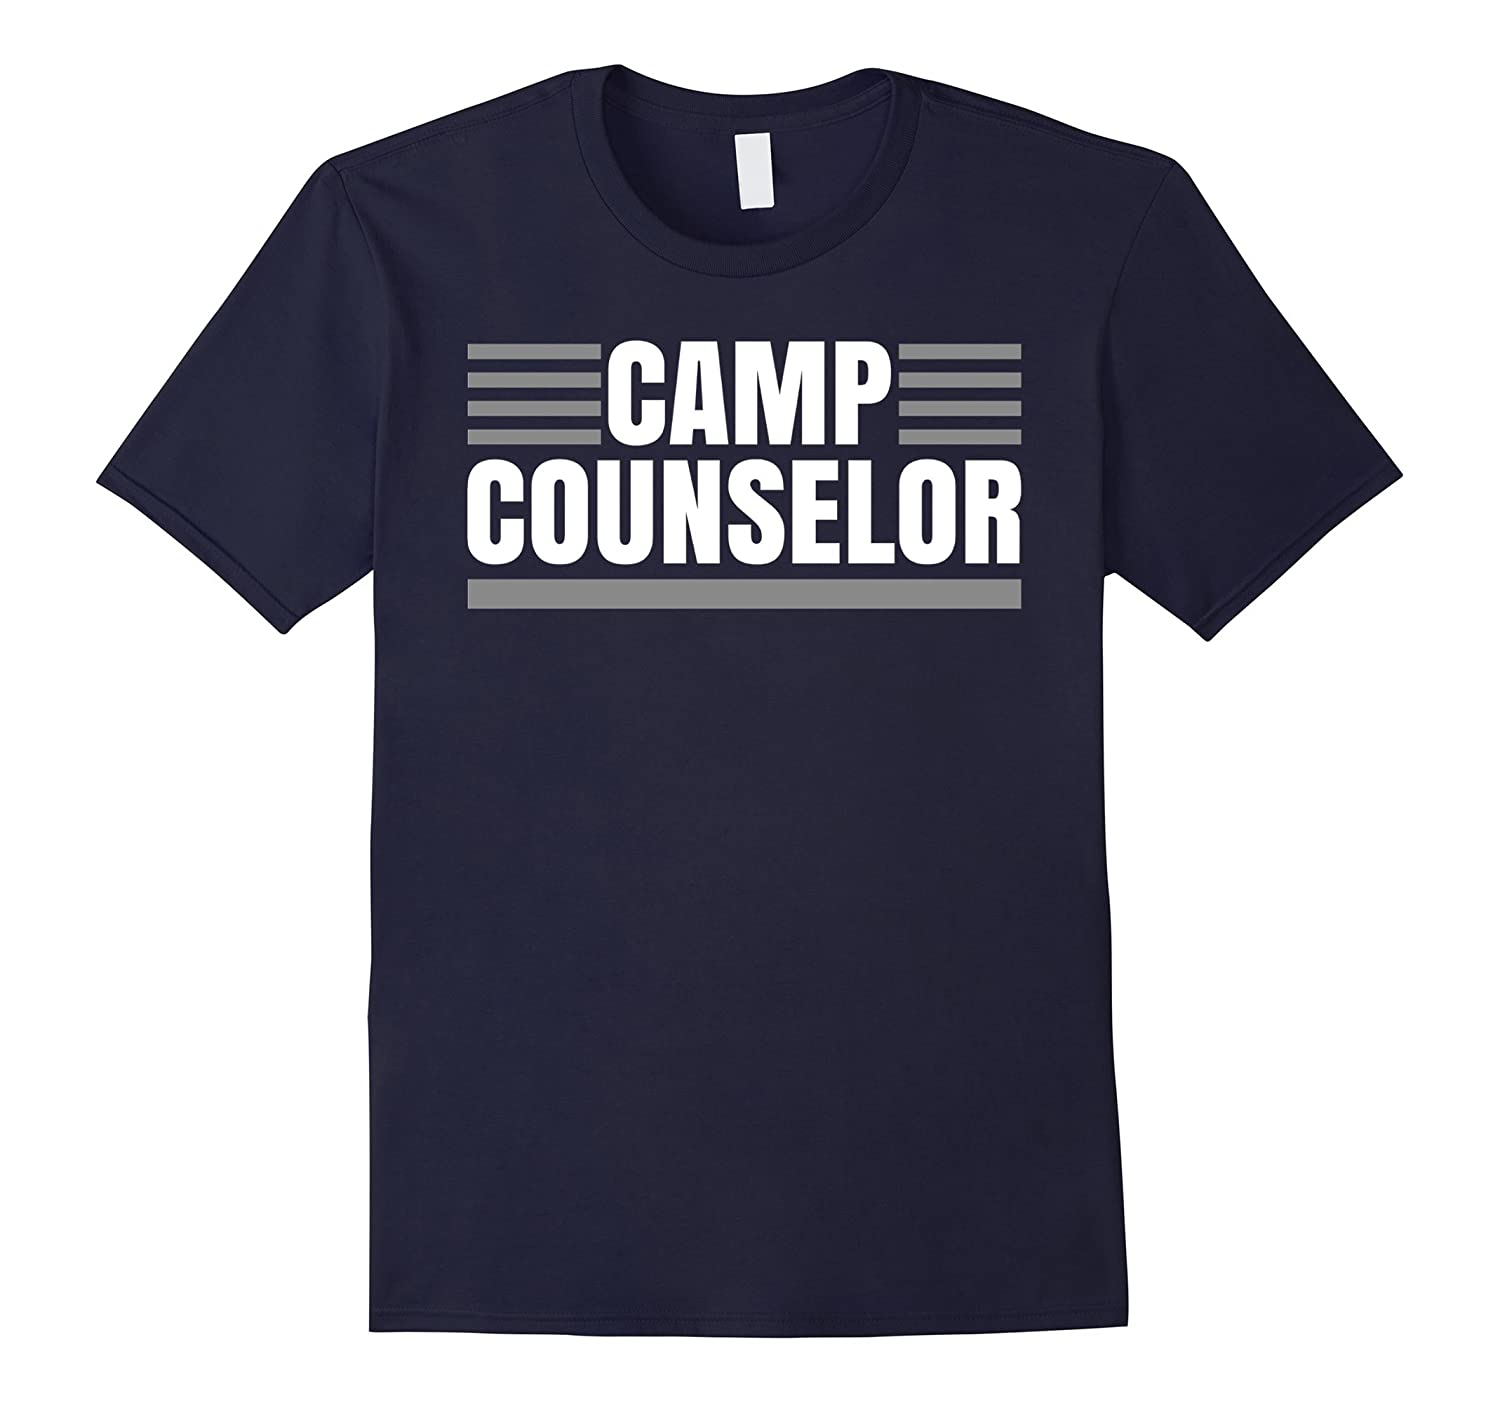 CAMP COUNSELOR  CAMPERS STAFF T-SHIRT-Vaci